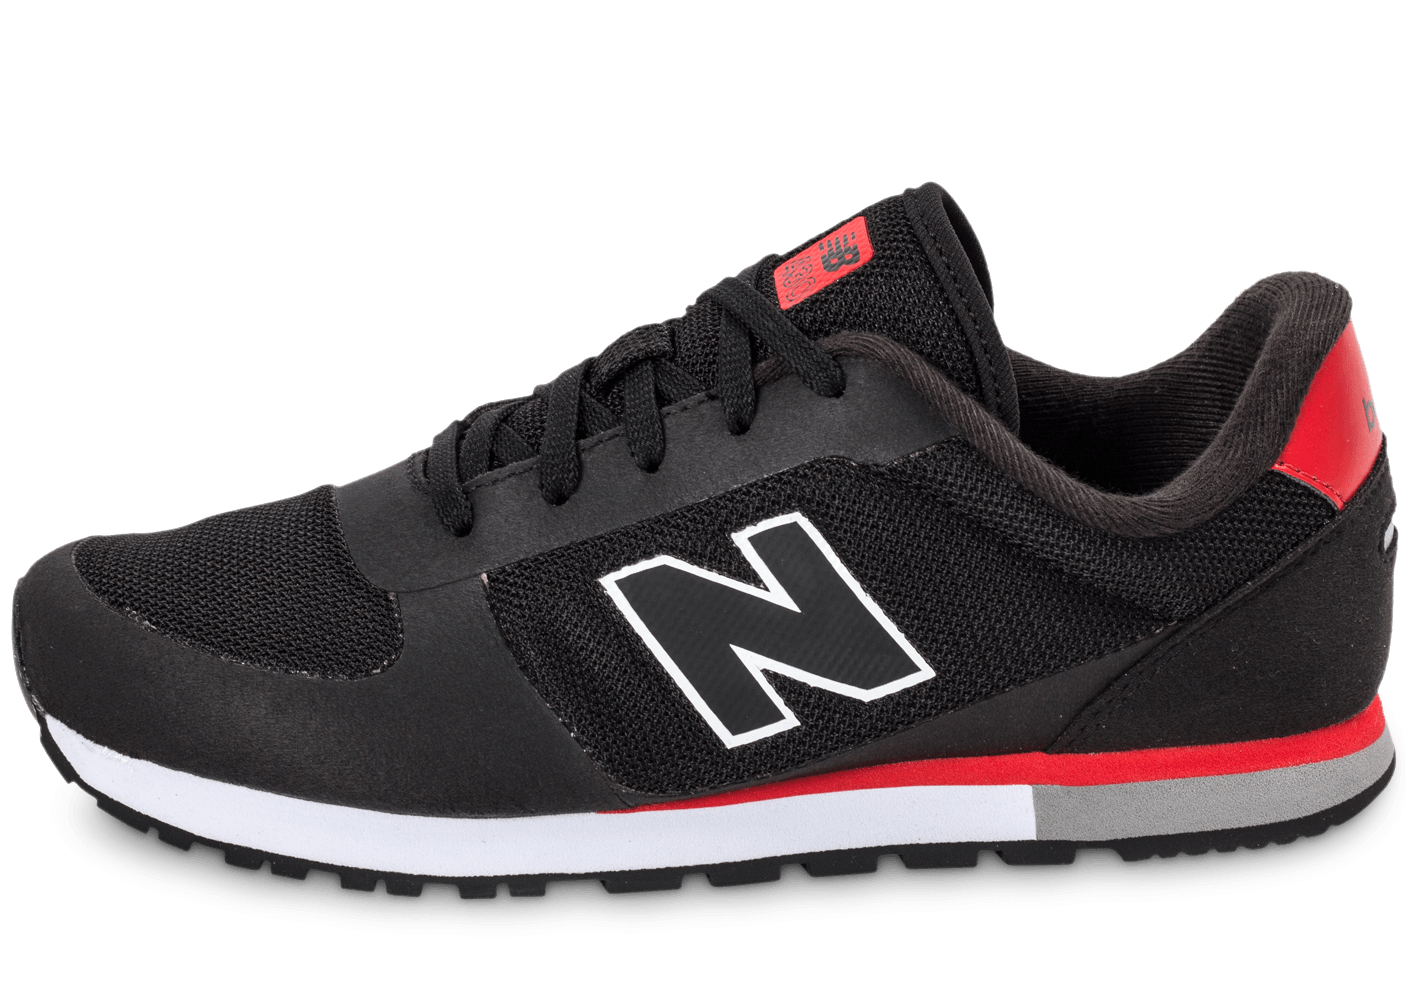 new balance noir et rouge homme. Black Bedroom Furniture Sets. Home Design Ideas